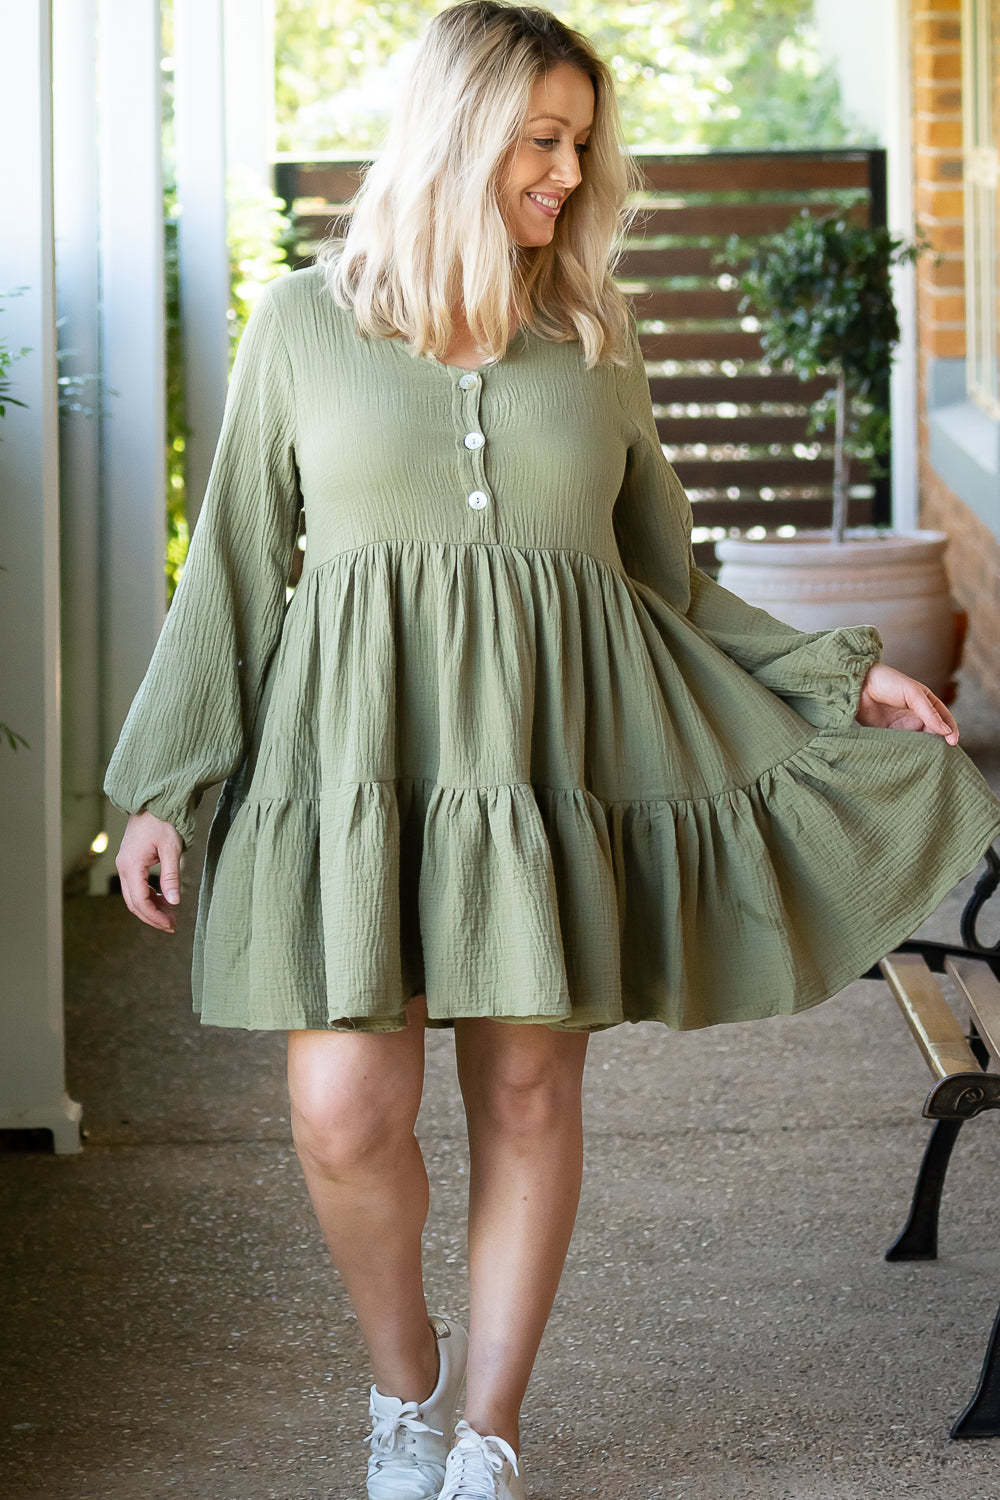 Jacqueline Dress in Khaki